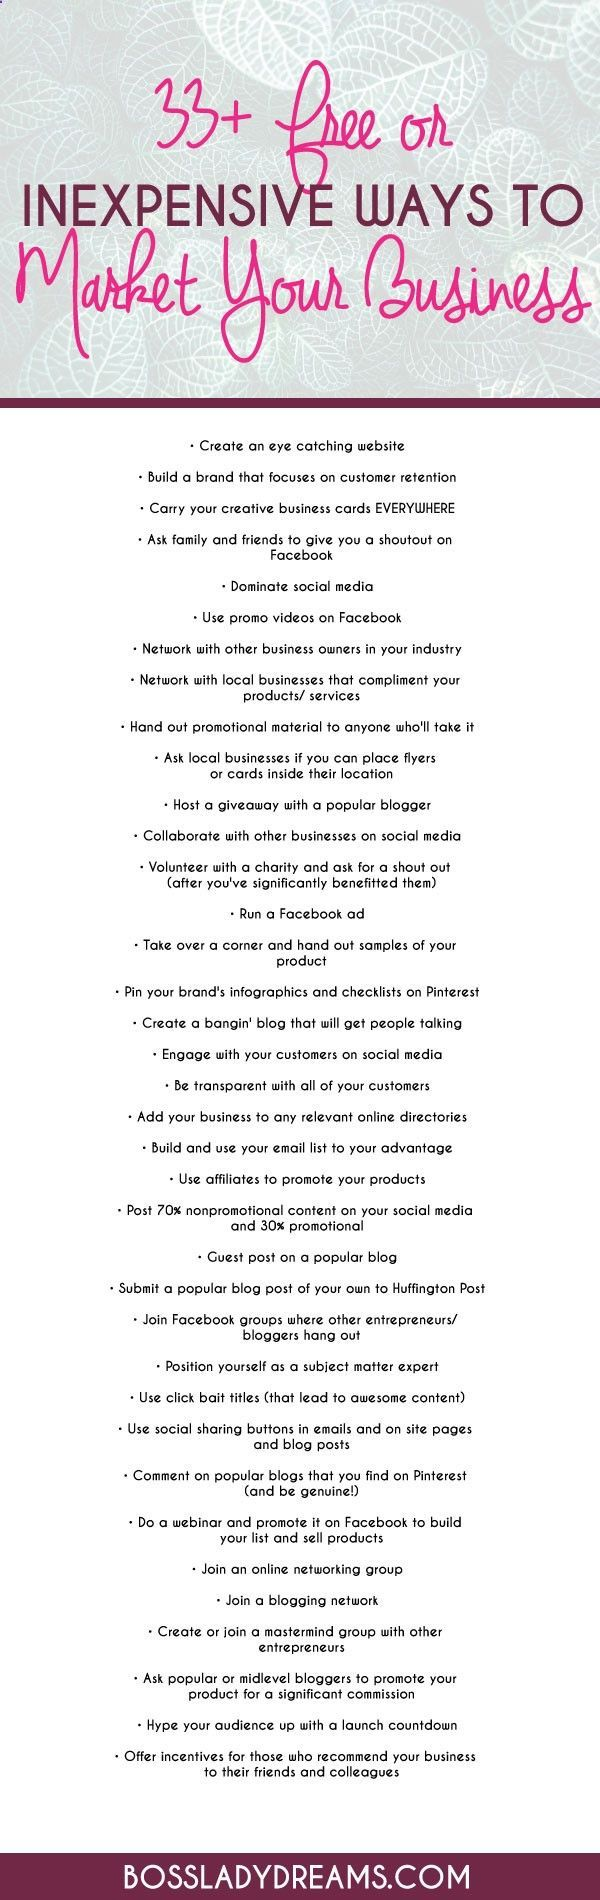 33  Free or Inexpensive Ways to Market Your Business Today Start up entrepreneurs never have as much money as theyd like to have in the bank. I mean, really, its every entrepreneurs dream to build a business and then magically have people flock to it. Unfortunately, this couldnt be further from the truth. So youve gotta